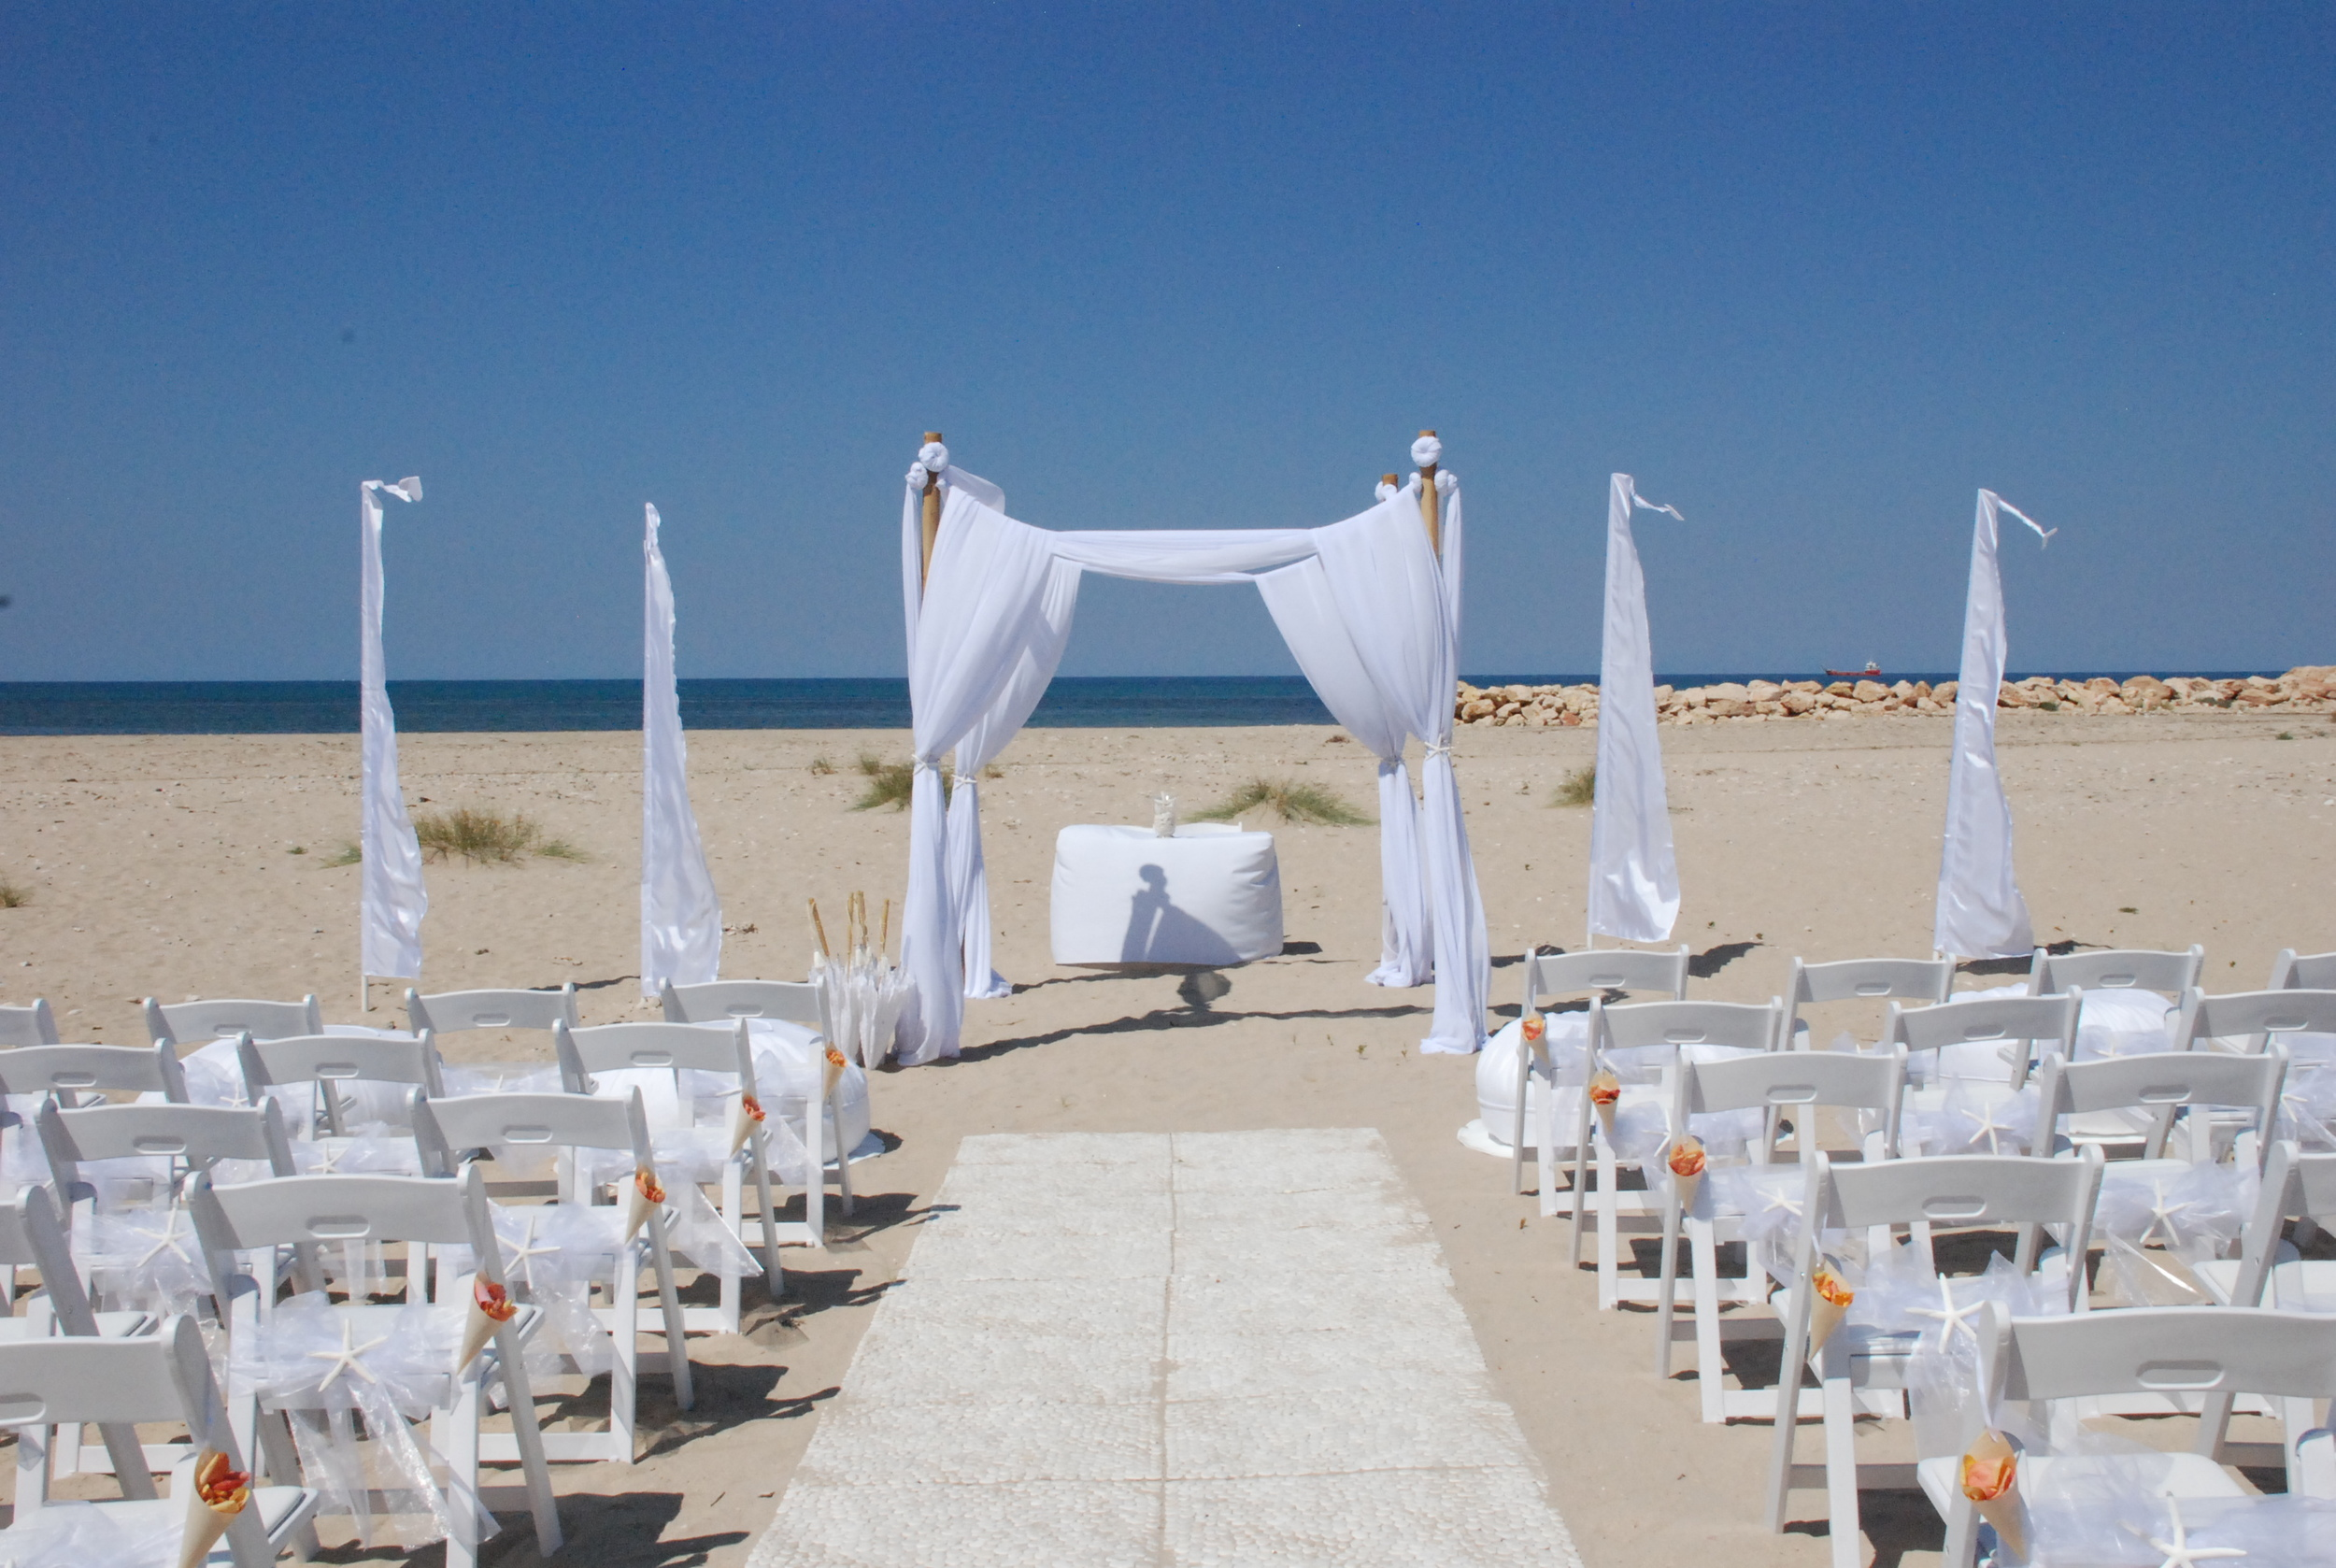 Bamboo Structure with White Drapes, Bali Flags, Pebble Matting Aisle & Gladiator Chairs